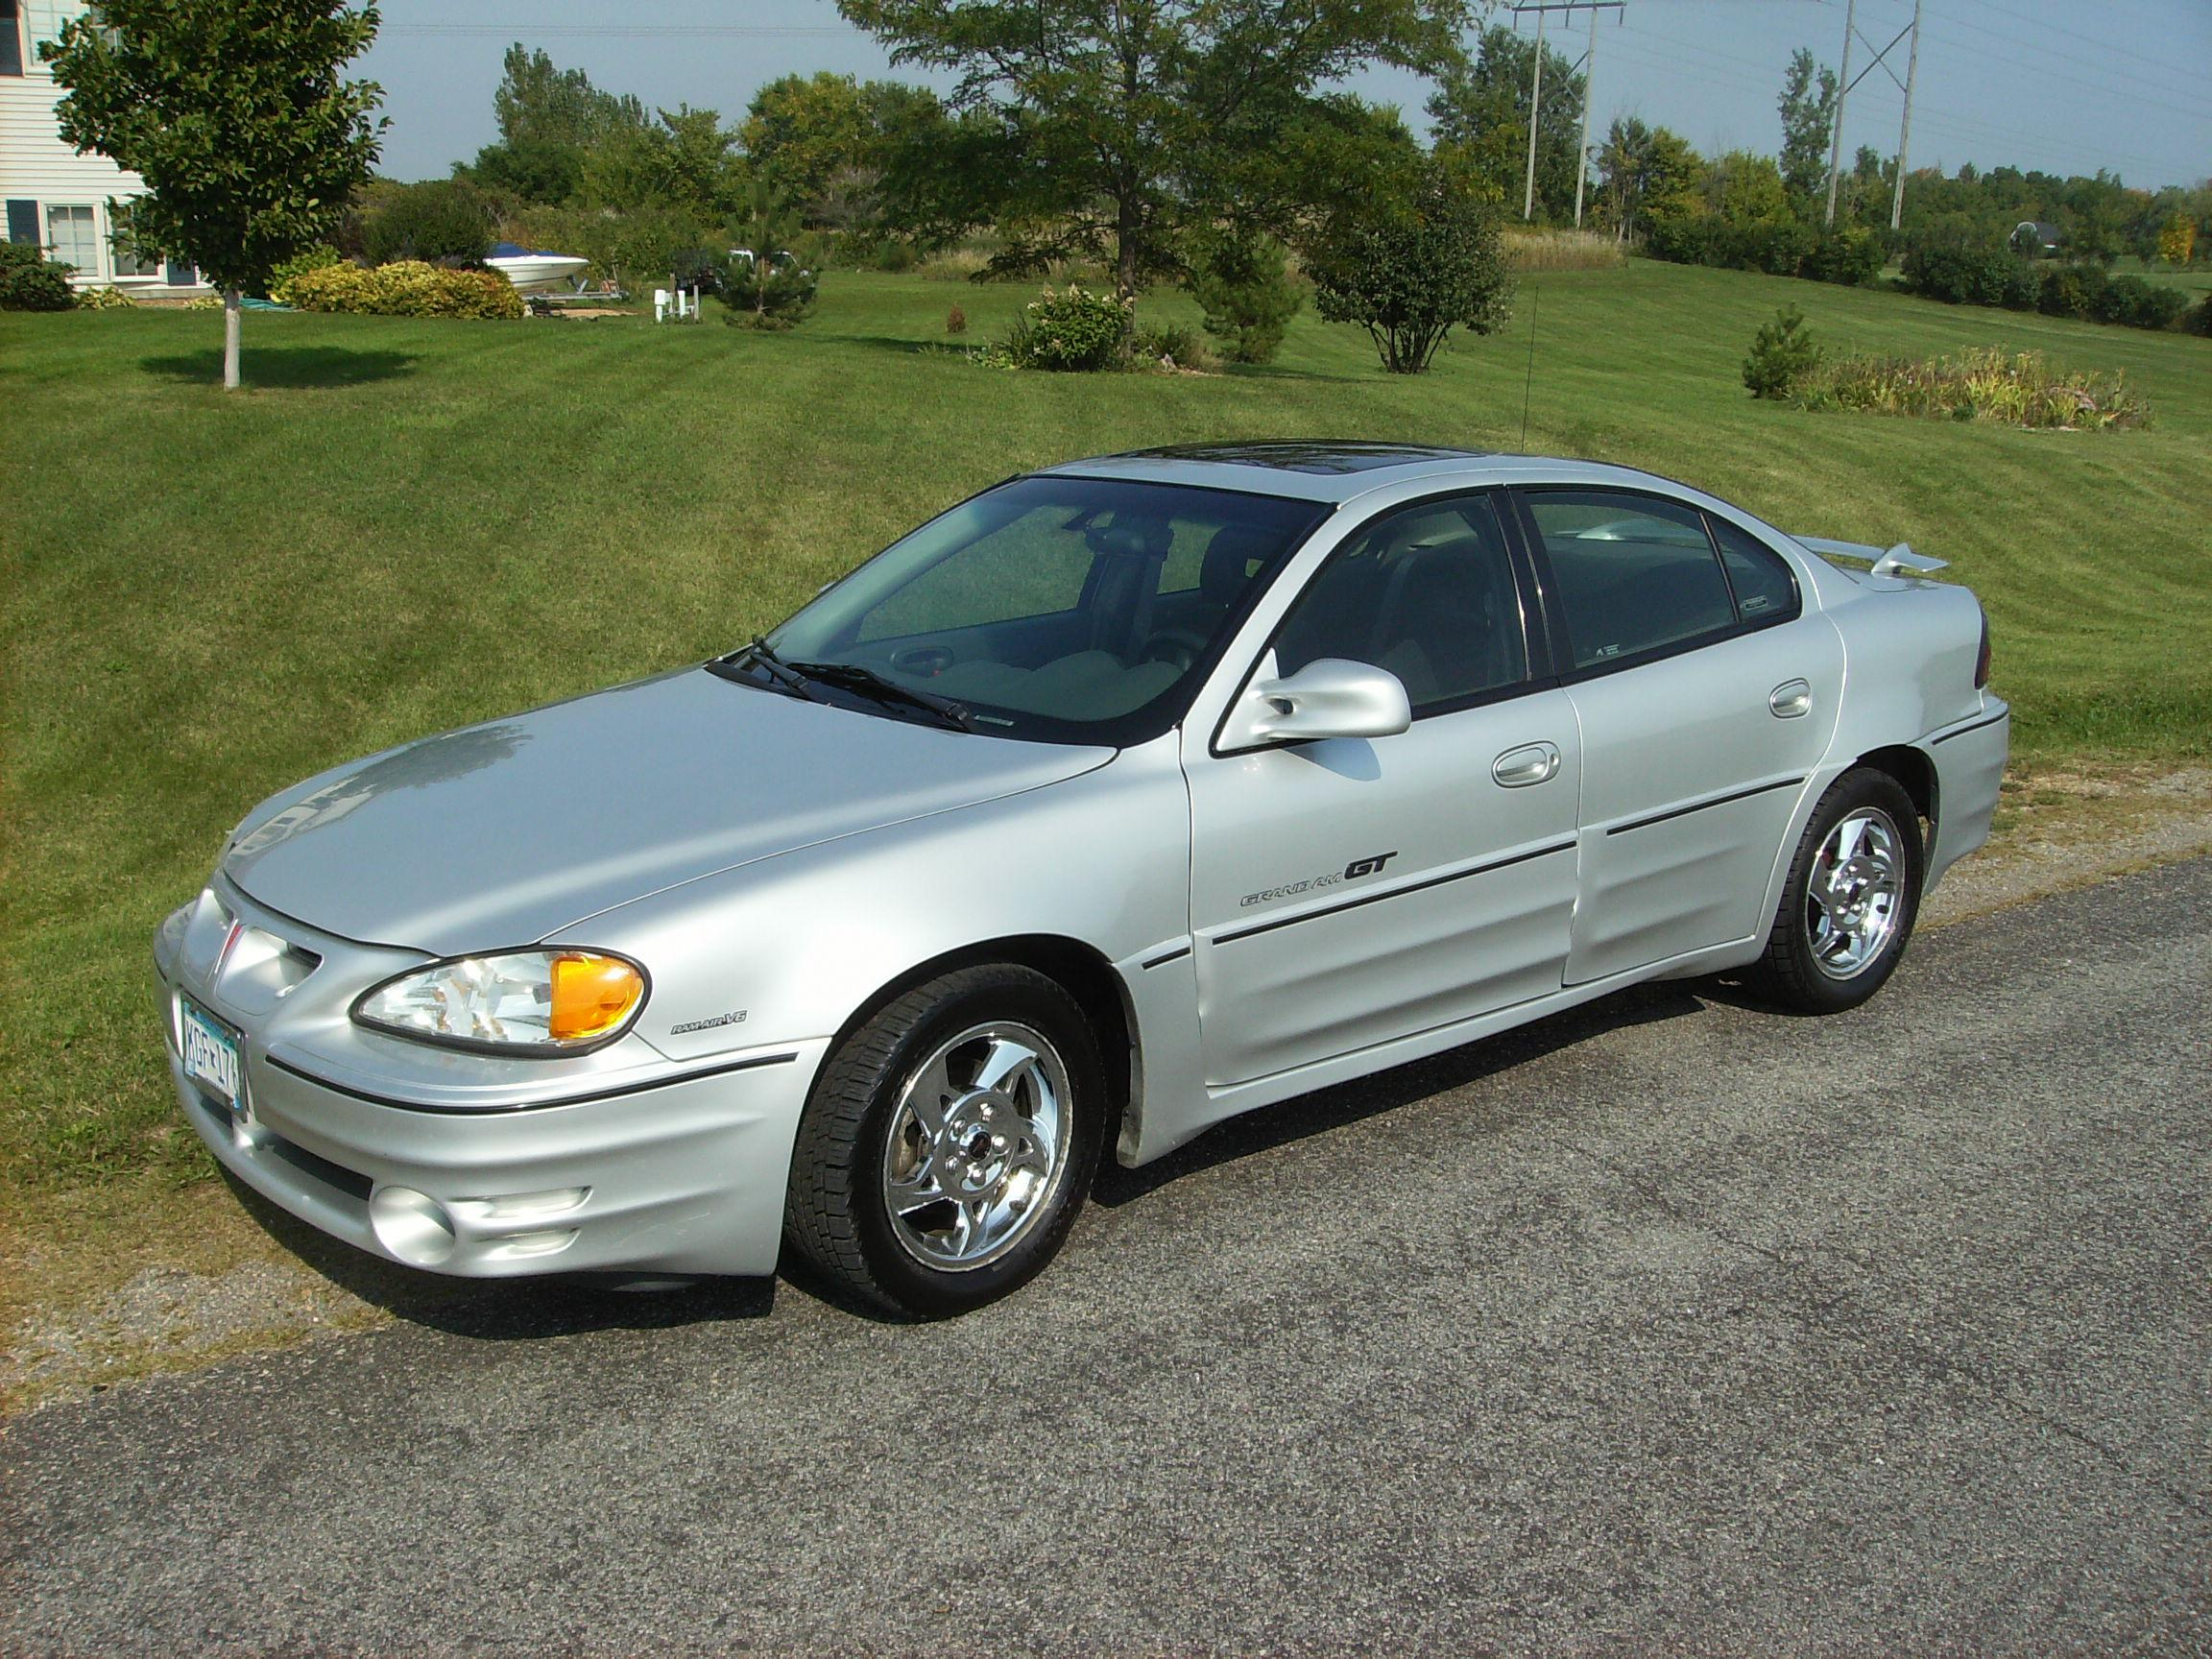 paulsobj 2002 pontiac grand amgt sedan 4d specs photos. Black Bedroom Furniture Sets. Home Design Ideas